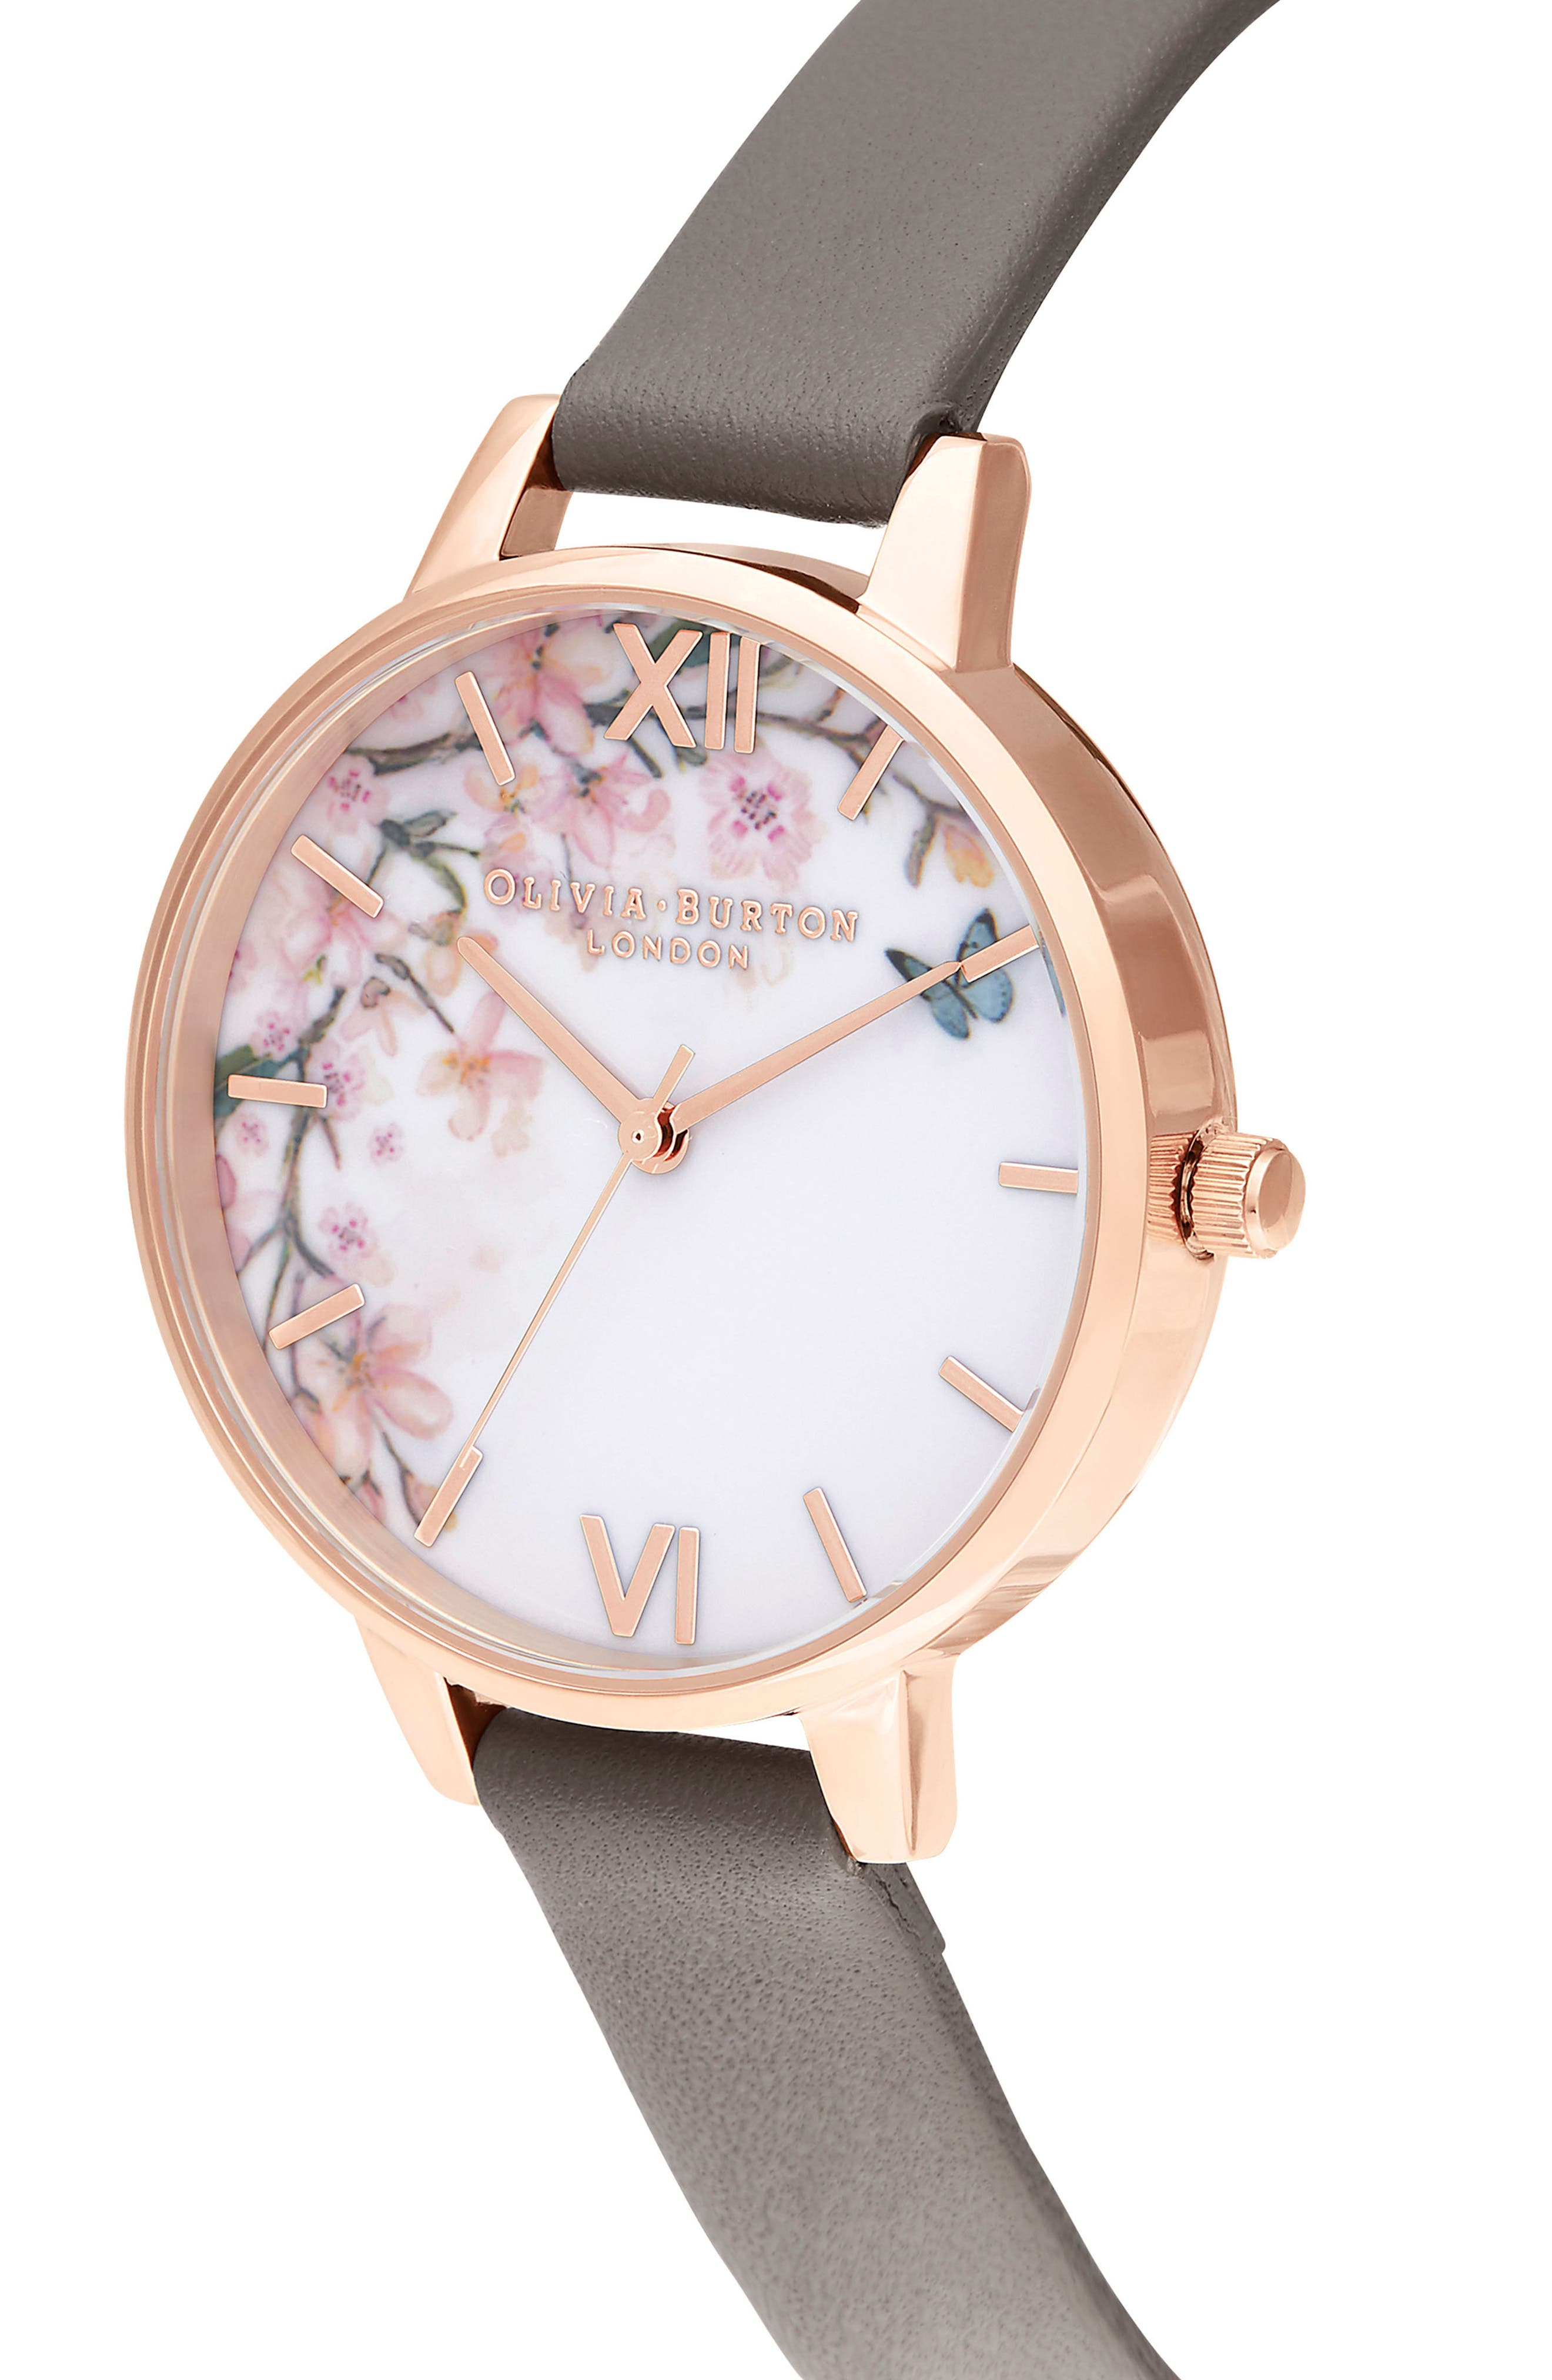 OLIVIA BURTON, Pretty Blossom Leather Strap Watch, 34mm, Alternate thumbnail 4, color, GREY / WHITE/ ROSE GOLD